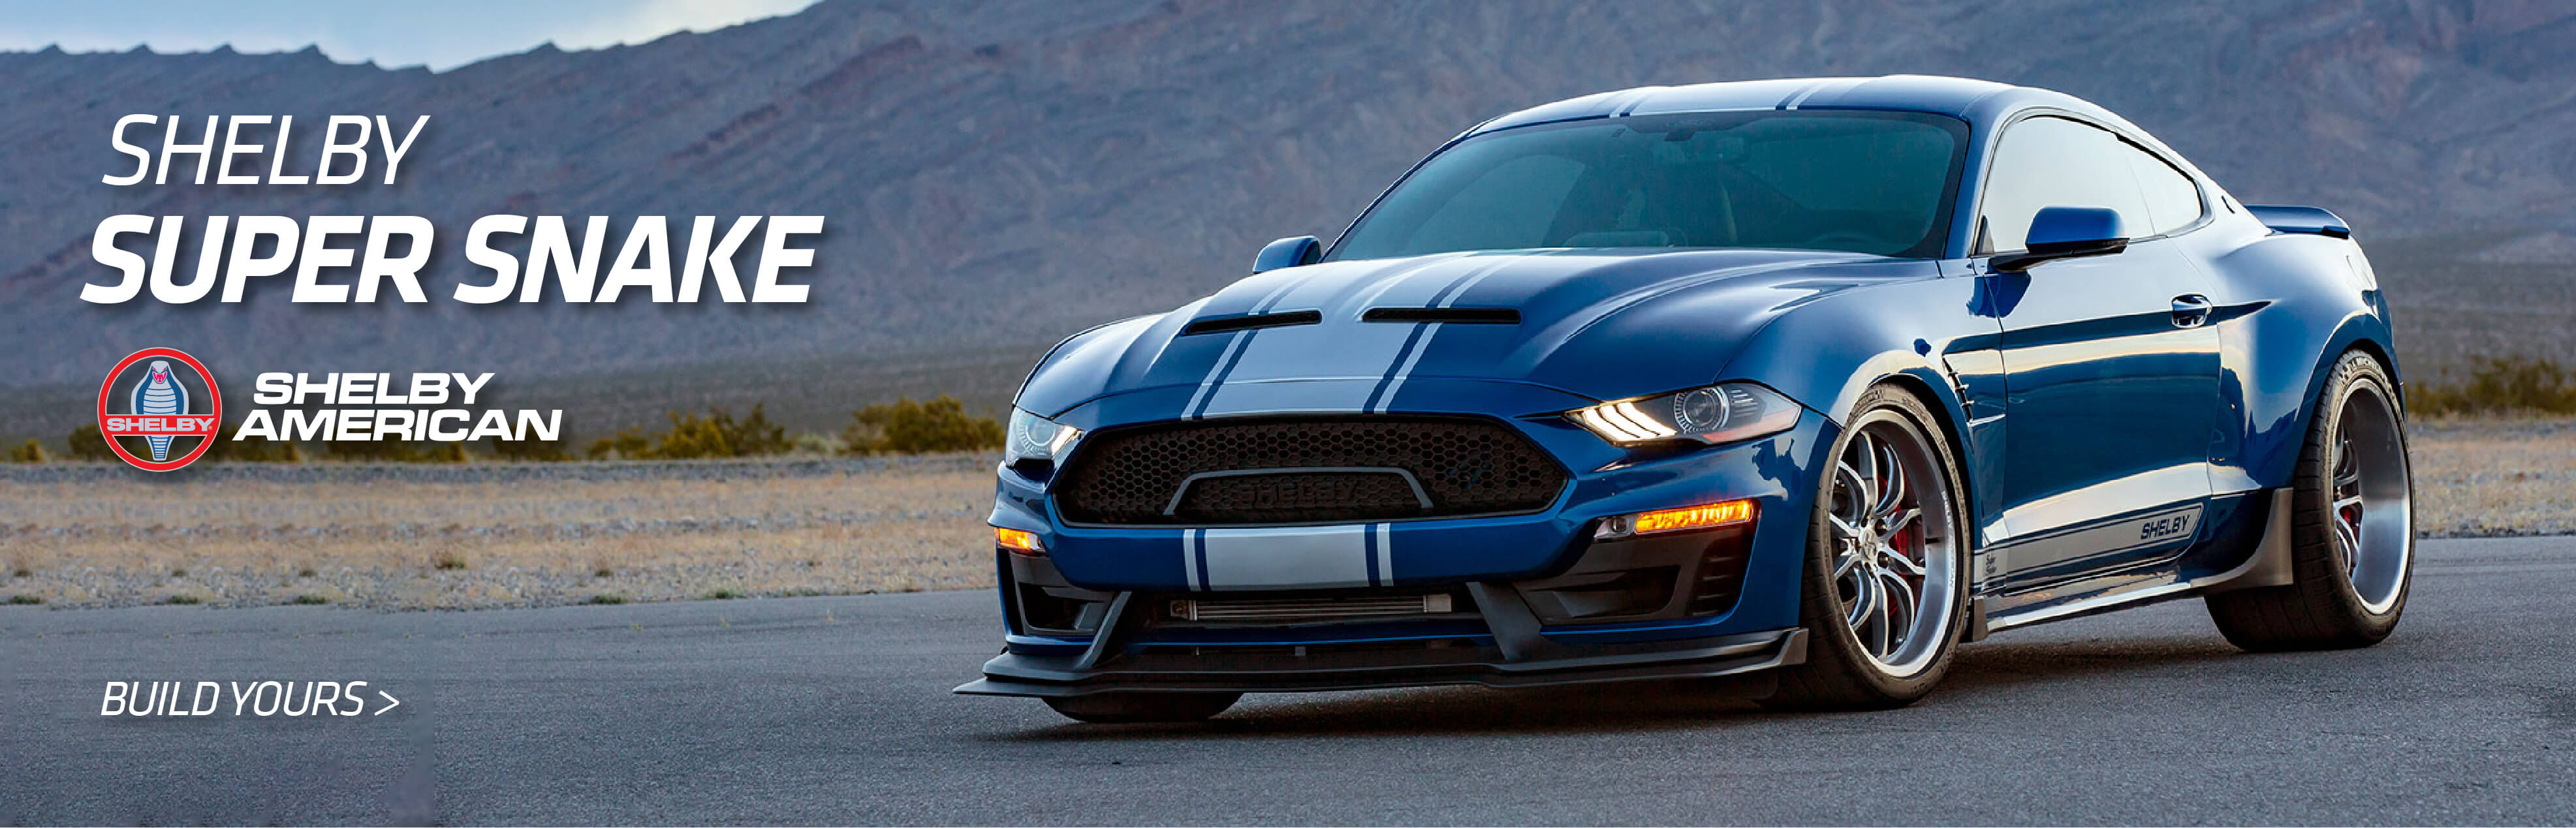 BF Shelby American Page Mock-up- Super Snake-Hero1